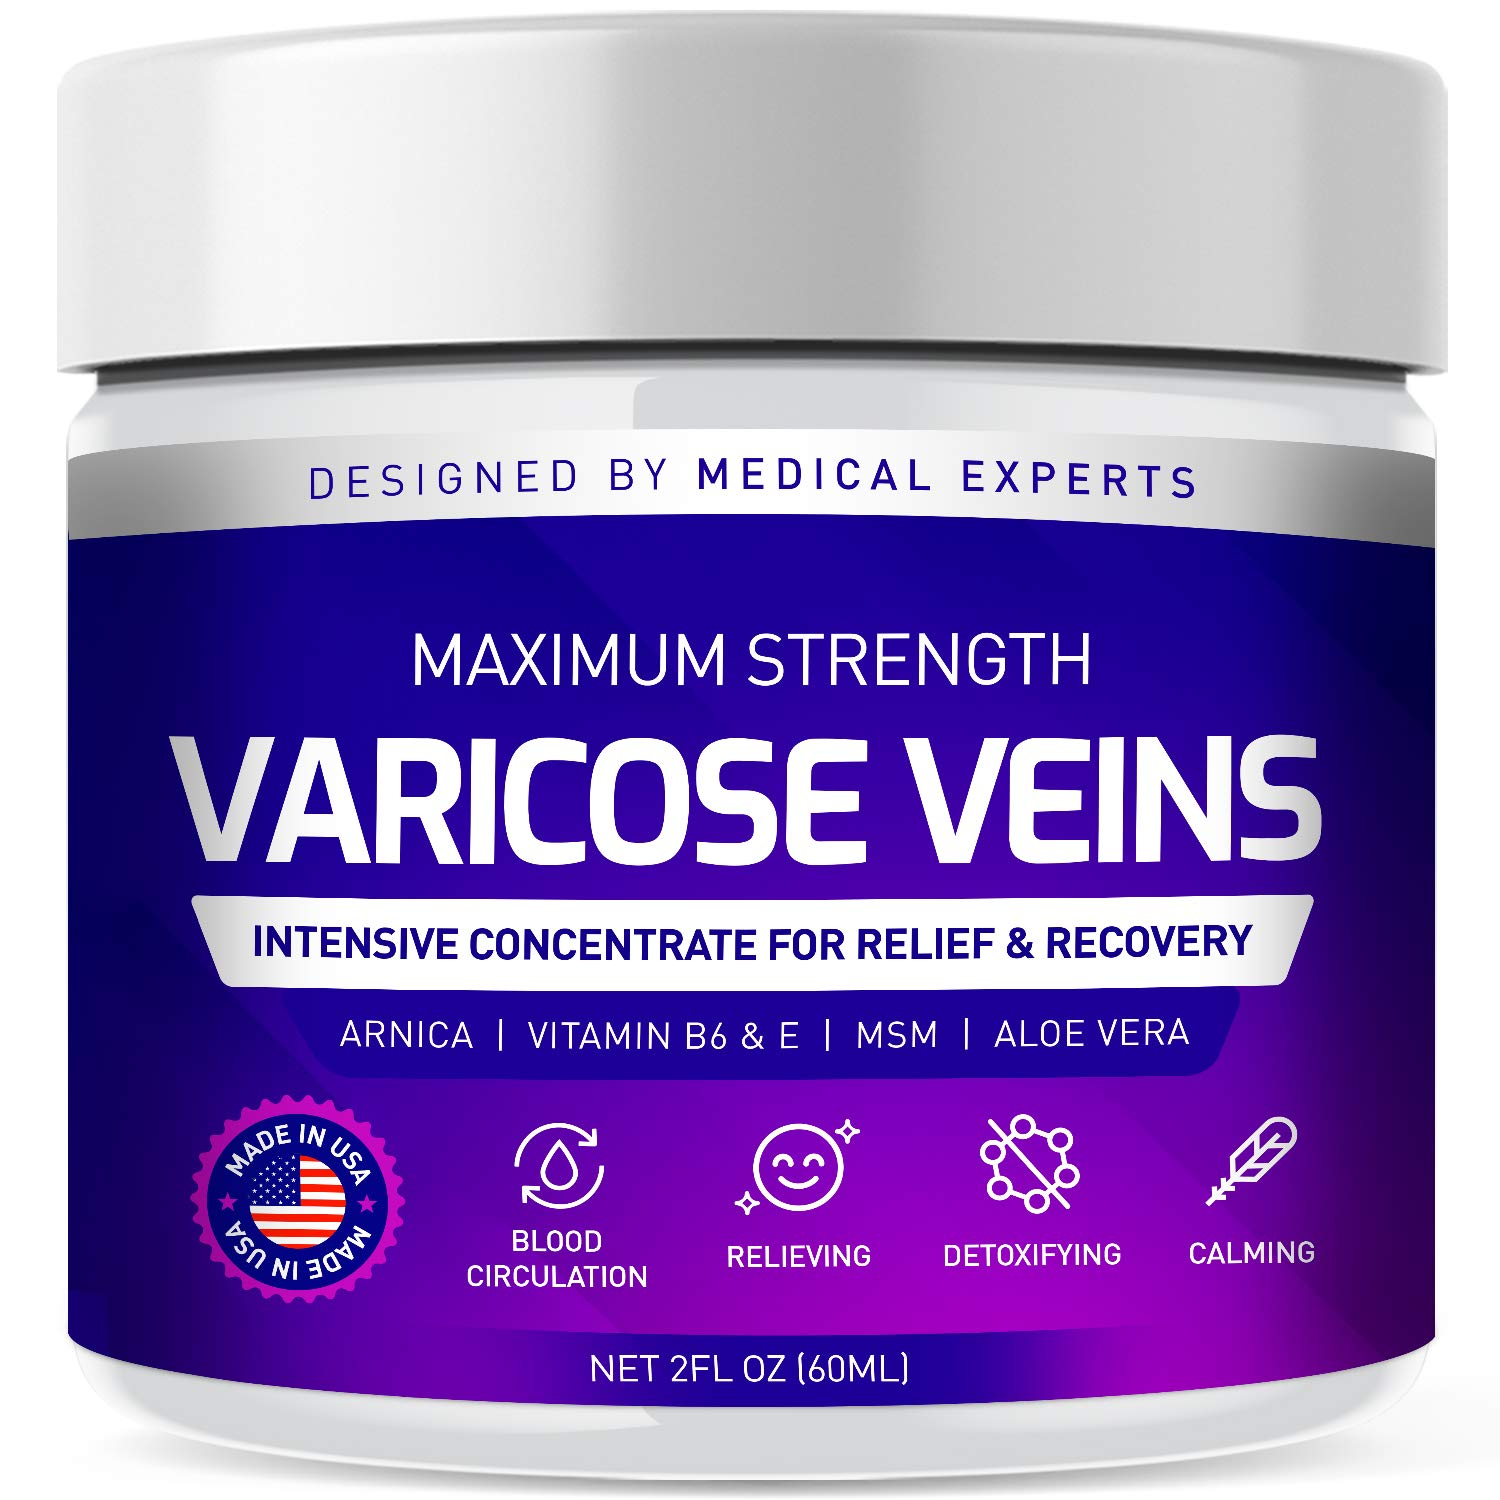 Varicose Veins Cream, Varicose Vein & Soothing Leg Cream, Natural Varicose & Spider Veins Treatment, Strengthen Capillary Health, Improve Blood Circulation, Tired and Heavy Legs Fast Relief 2oz